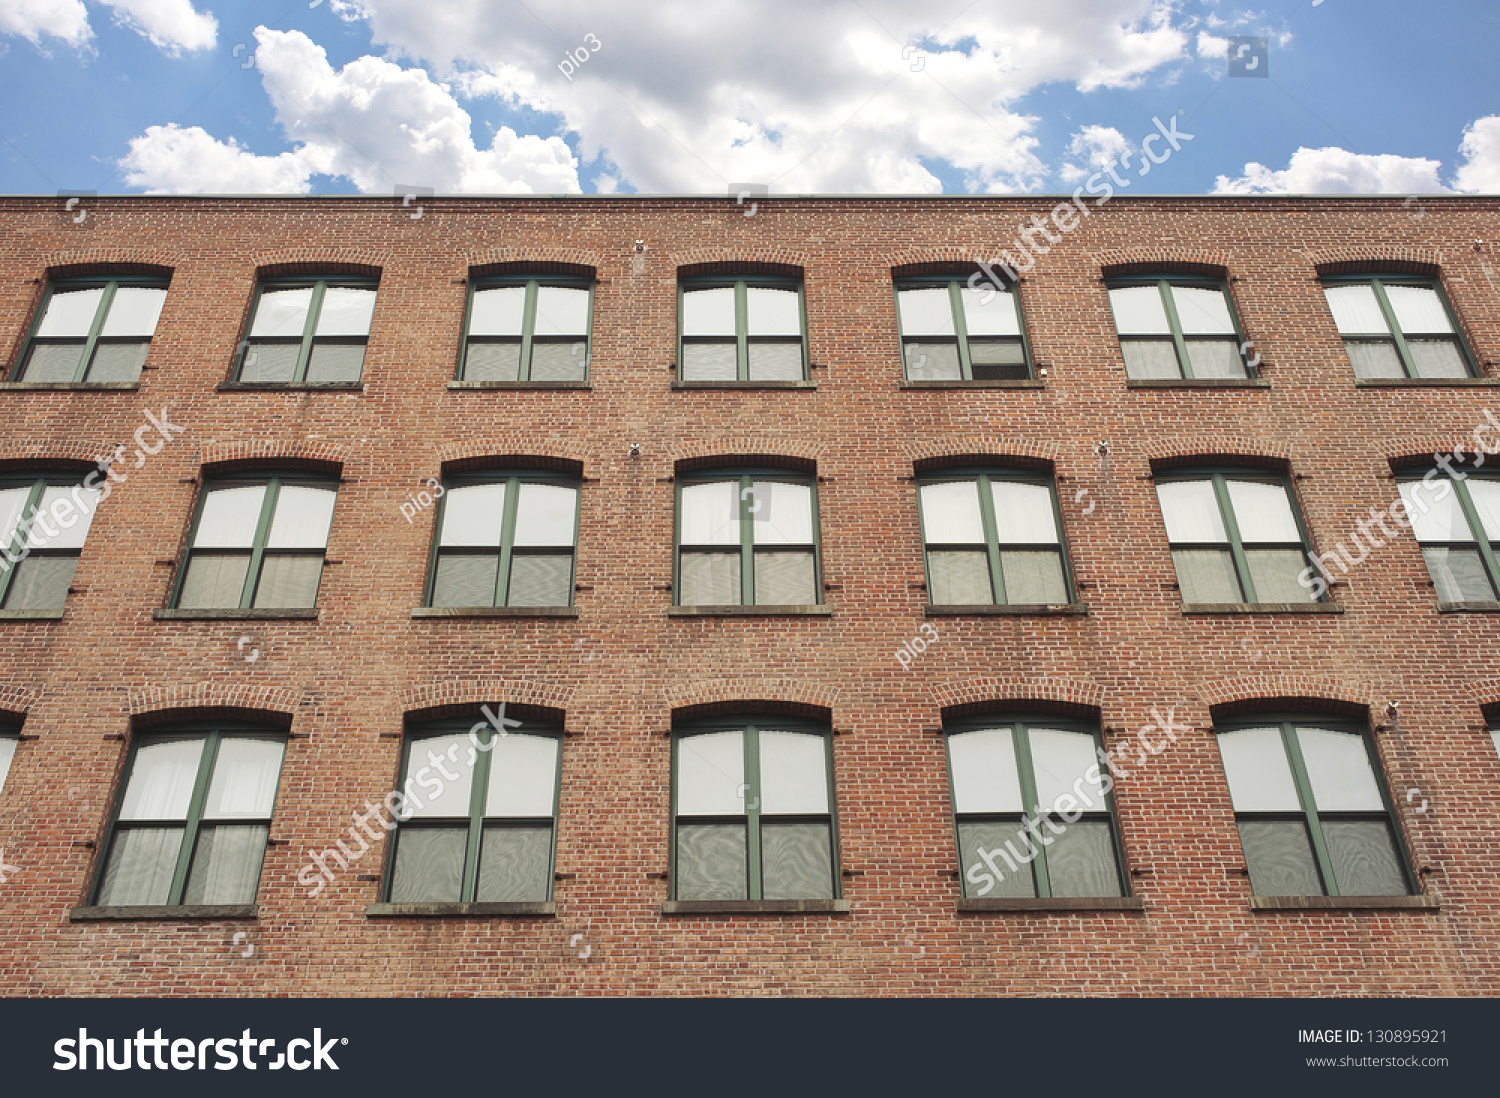 Facade Old Red Brick Apartment Building Stock Photo Brick Apartment Building